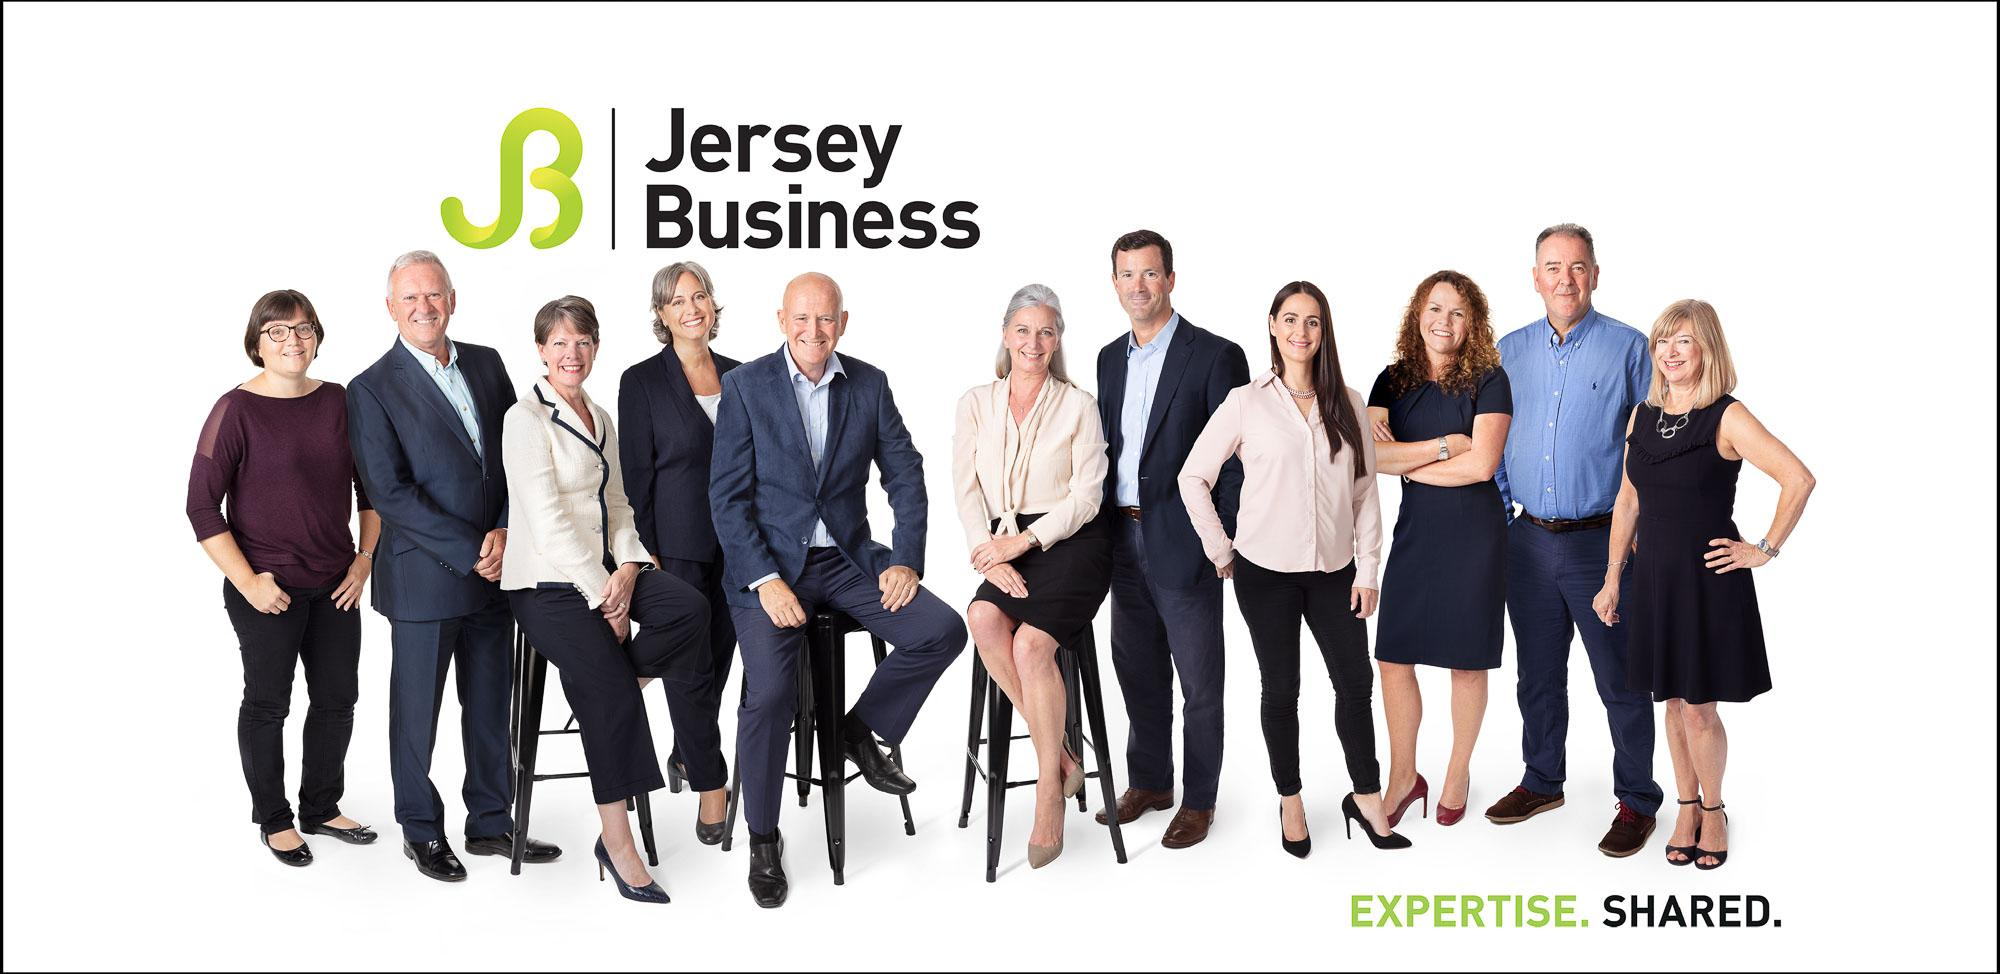 Jersey Business